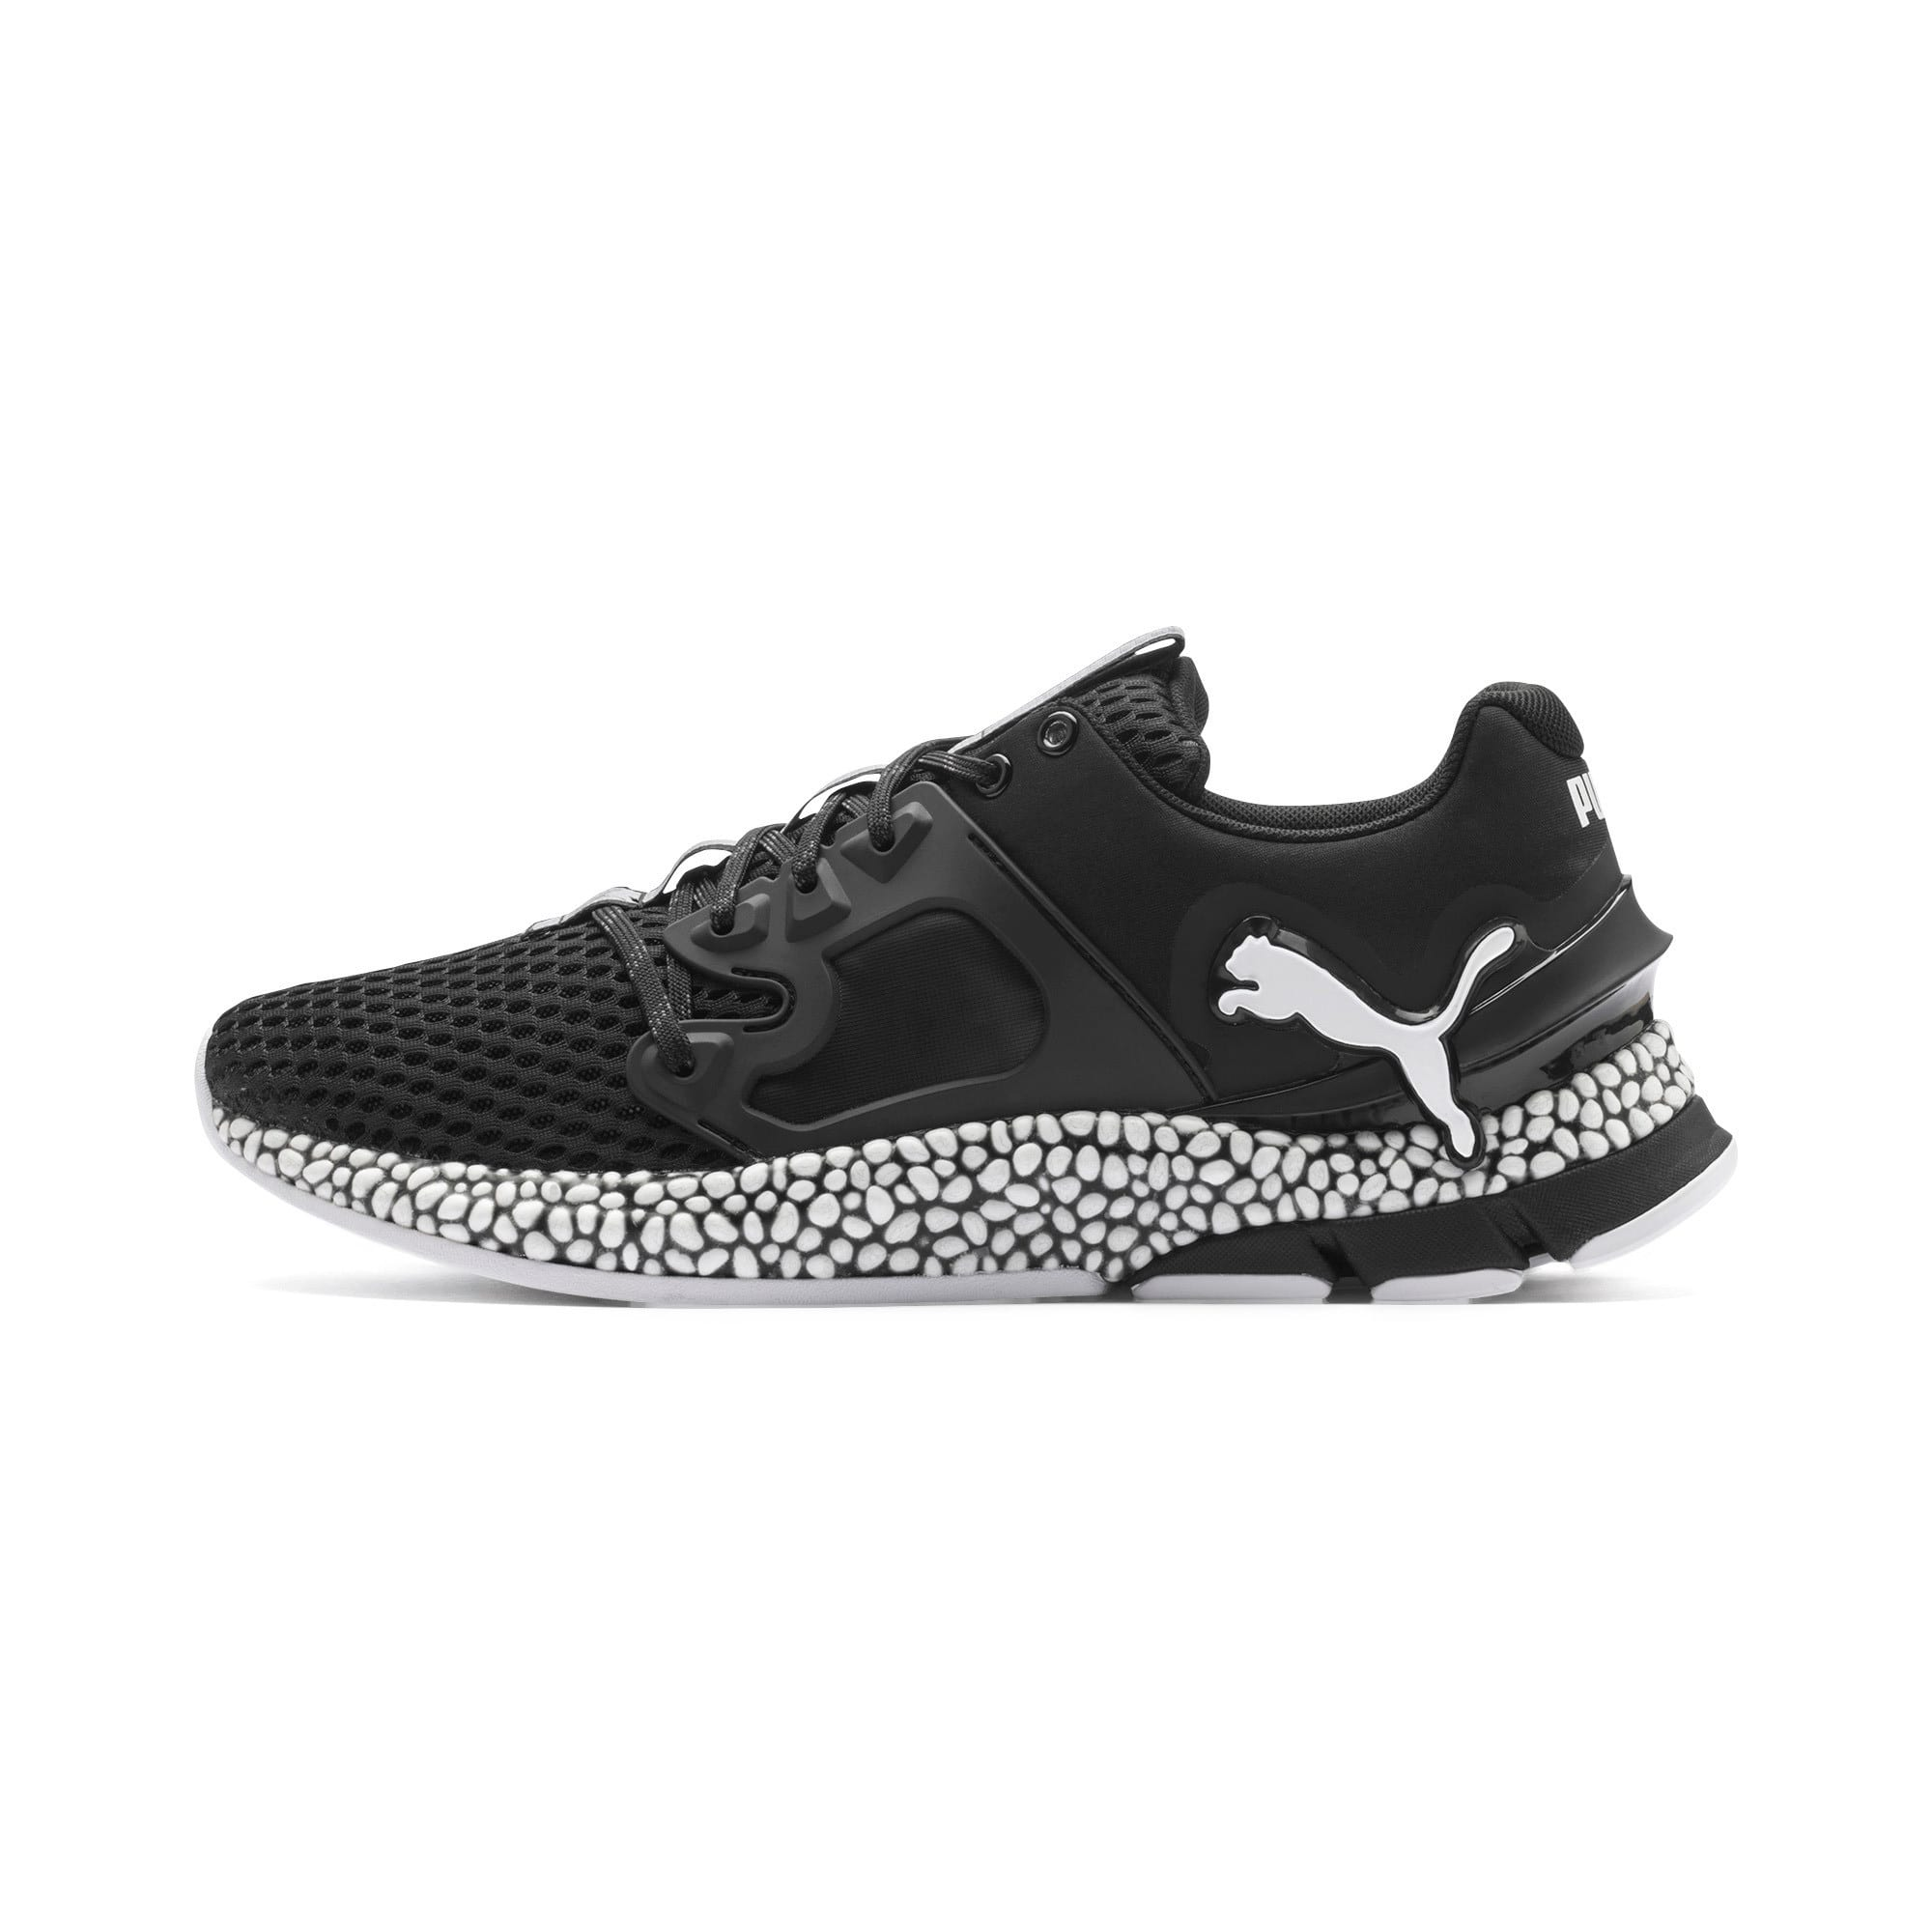 Thumbnail 1 of HYBRID Sky Men's Running Shoes, Puma Black-Puma White, medium